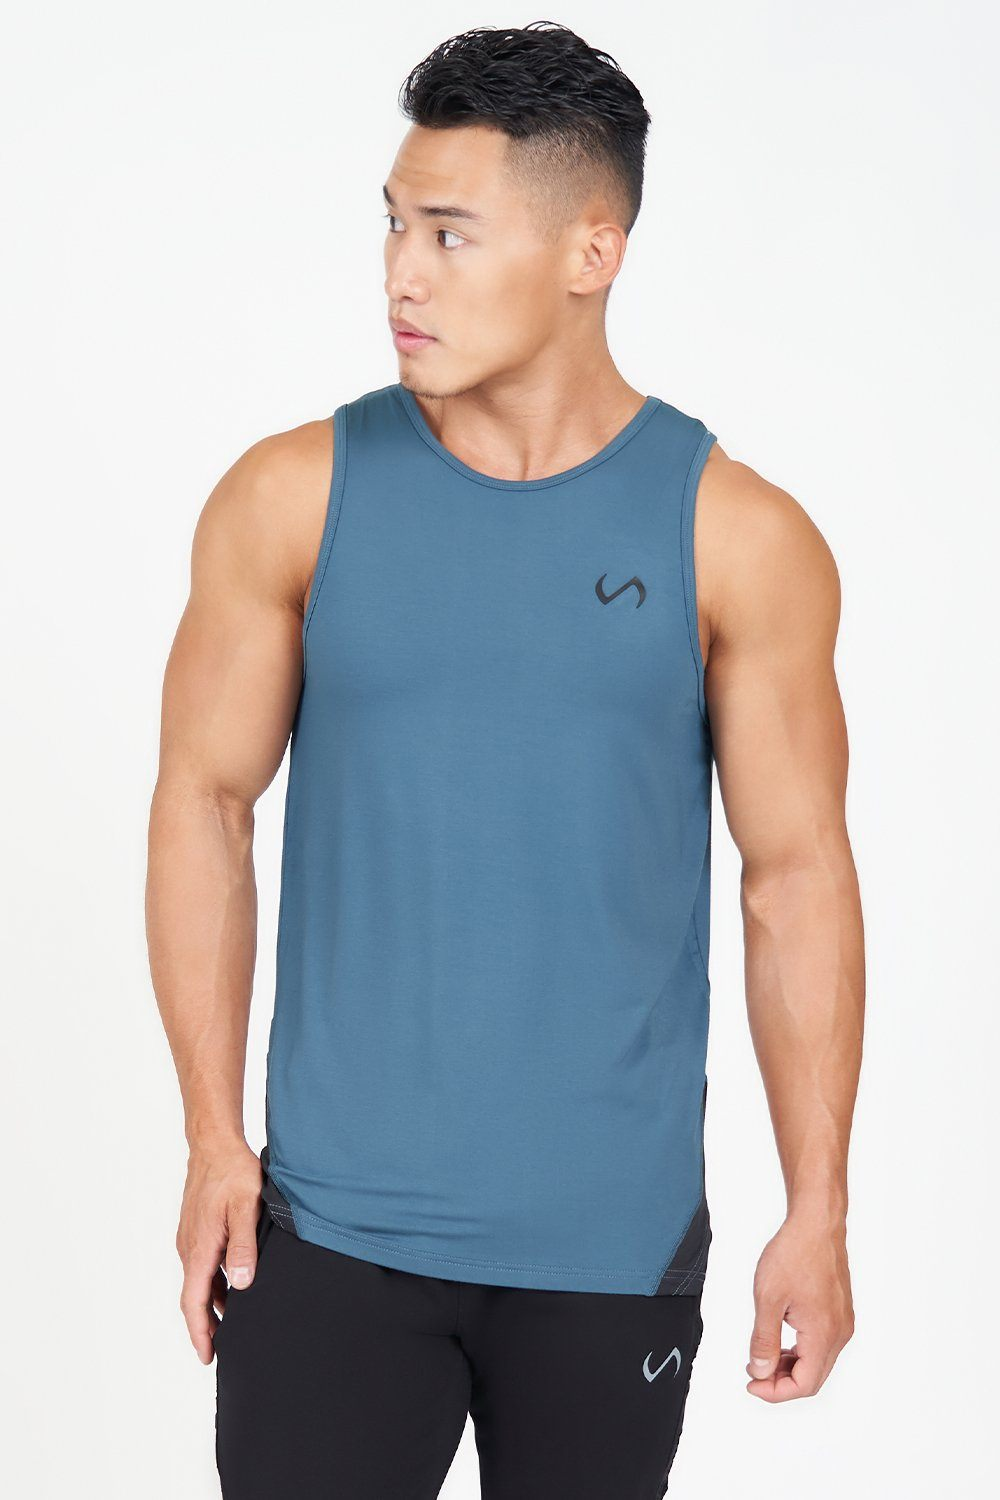 Surge Athletic Tank Top - TLF Apparel | Take Life Further